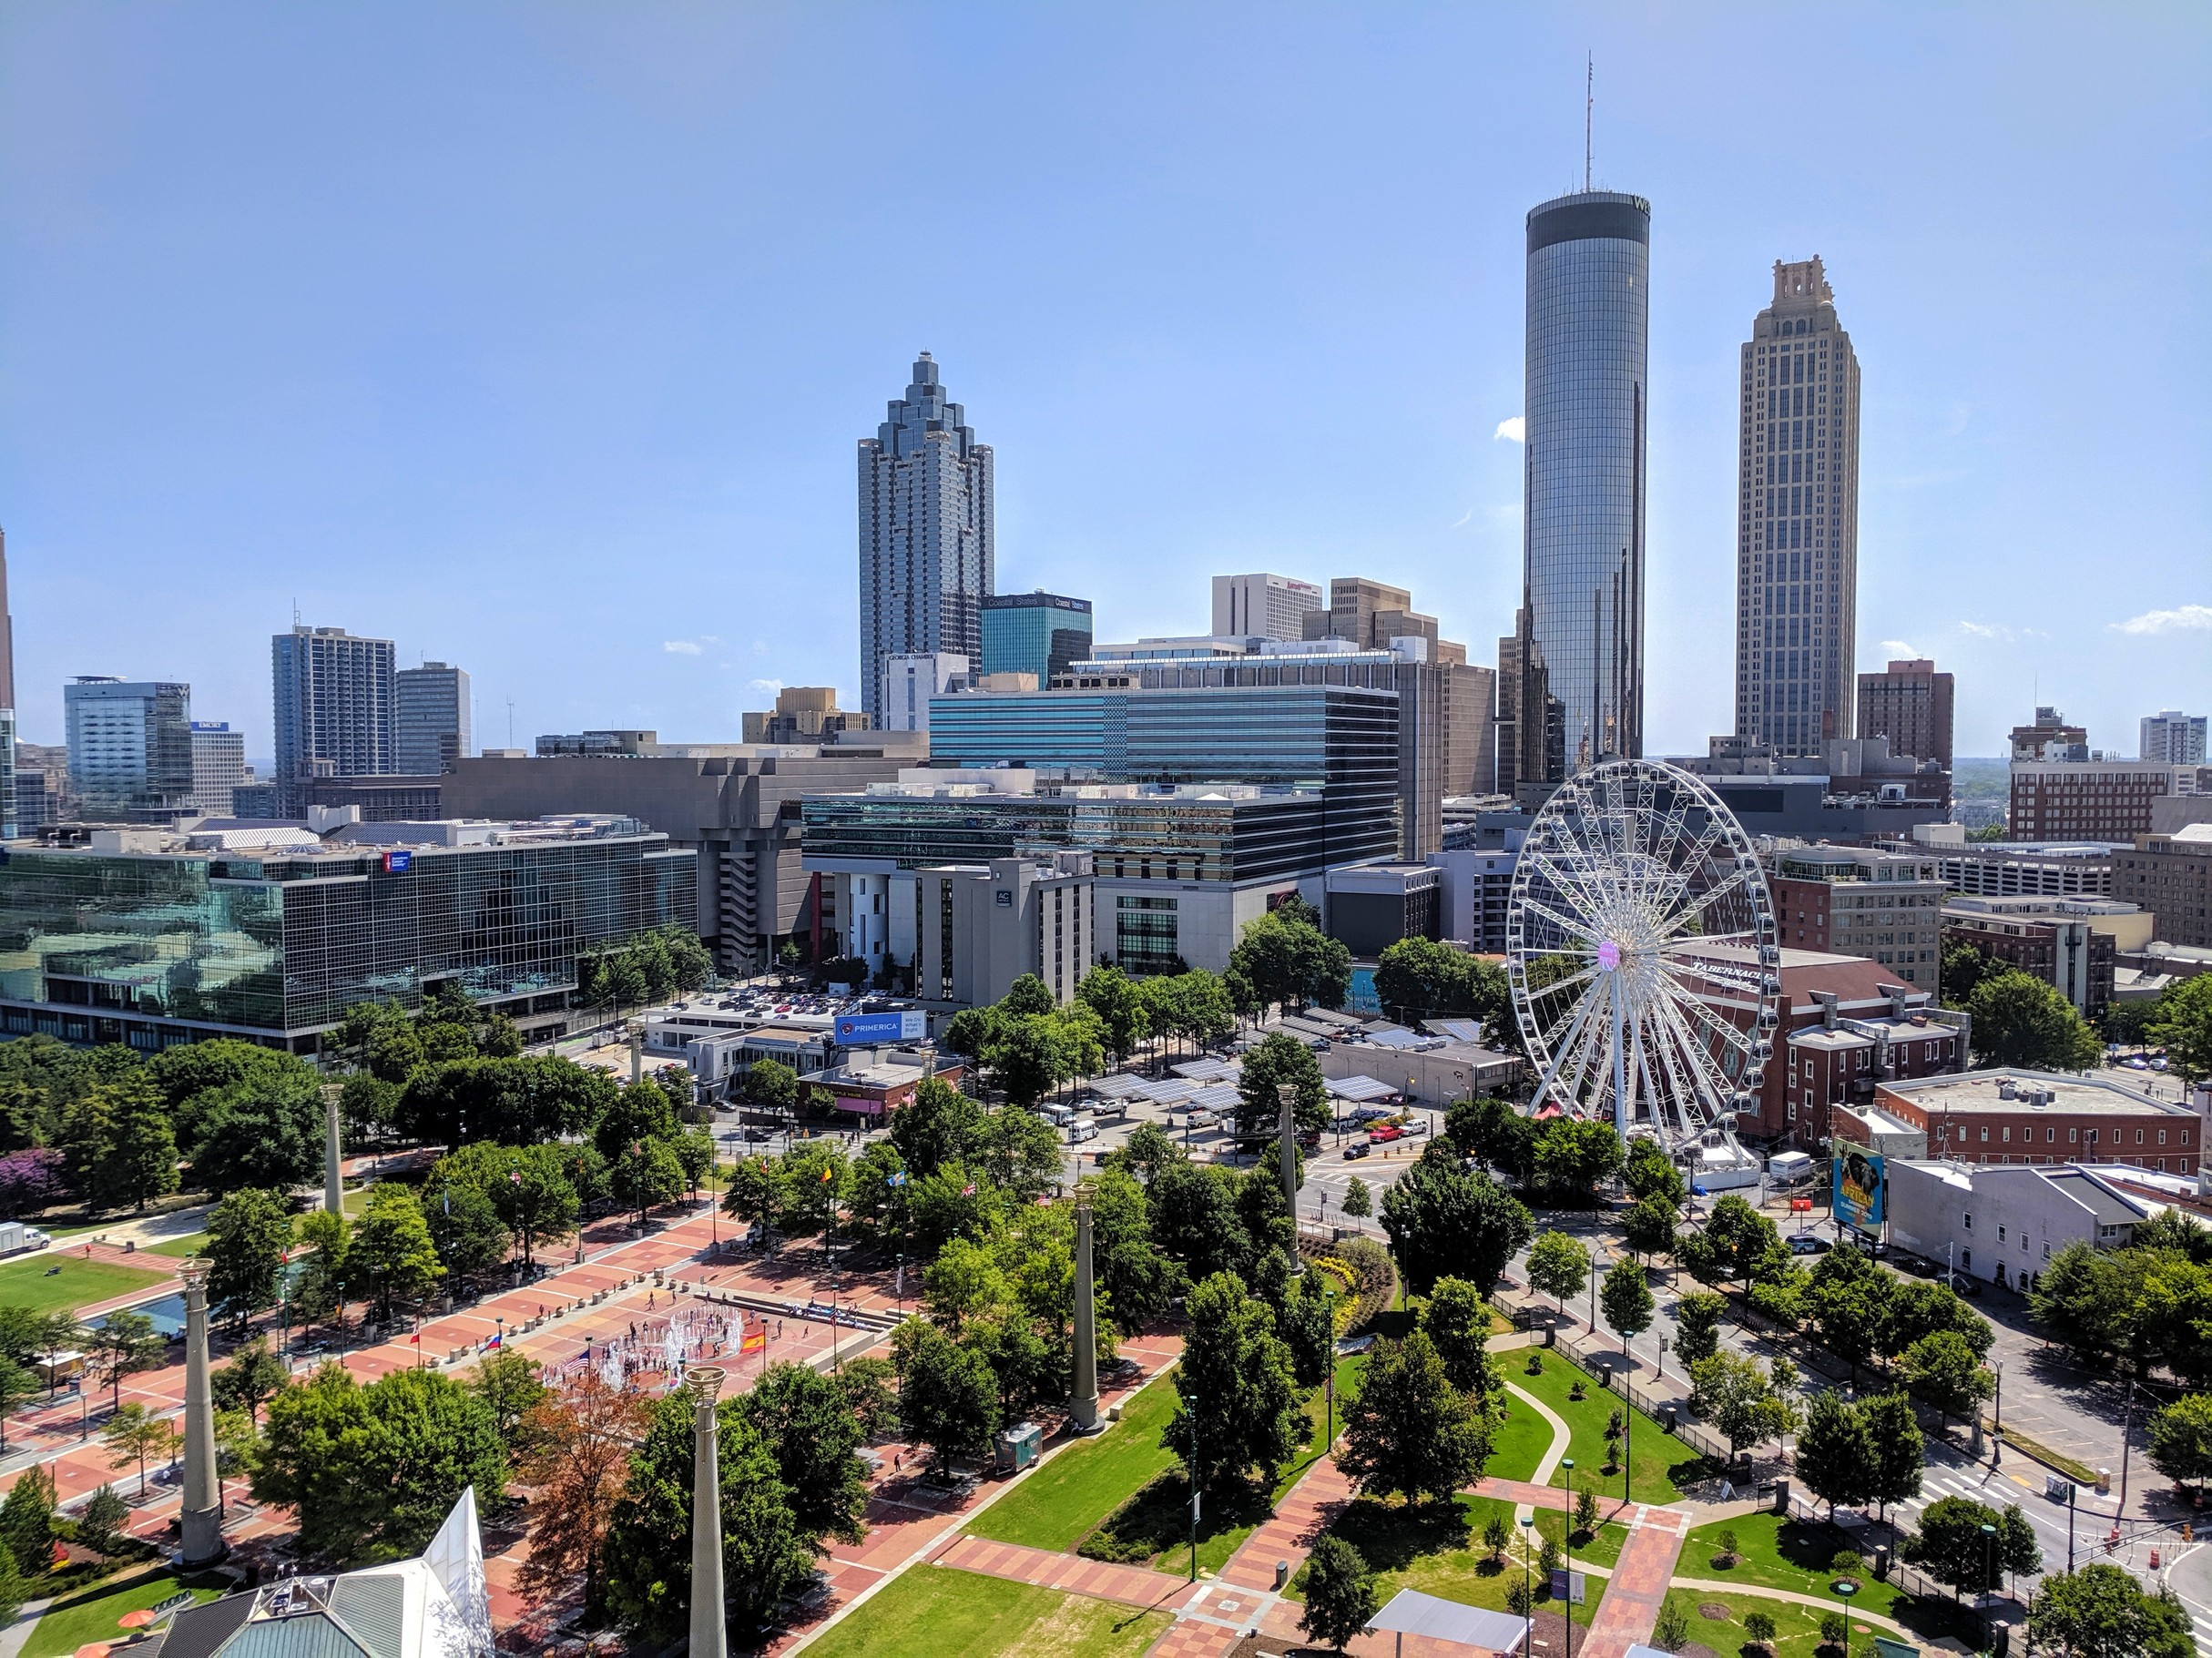 Aerial view of Centennial Olympic Park and Ferris Wheel with skyscrapers in the background.